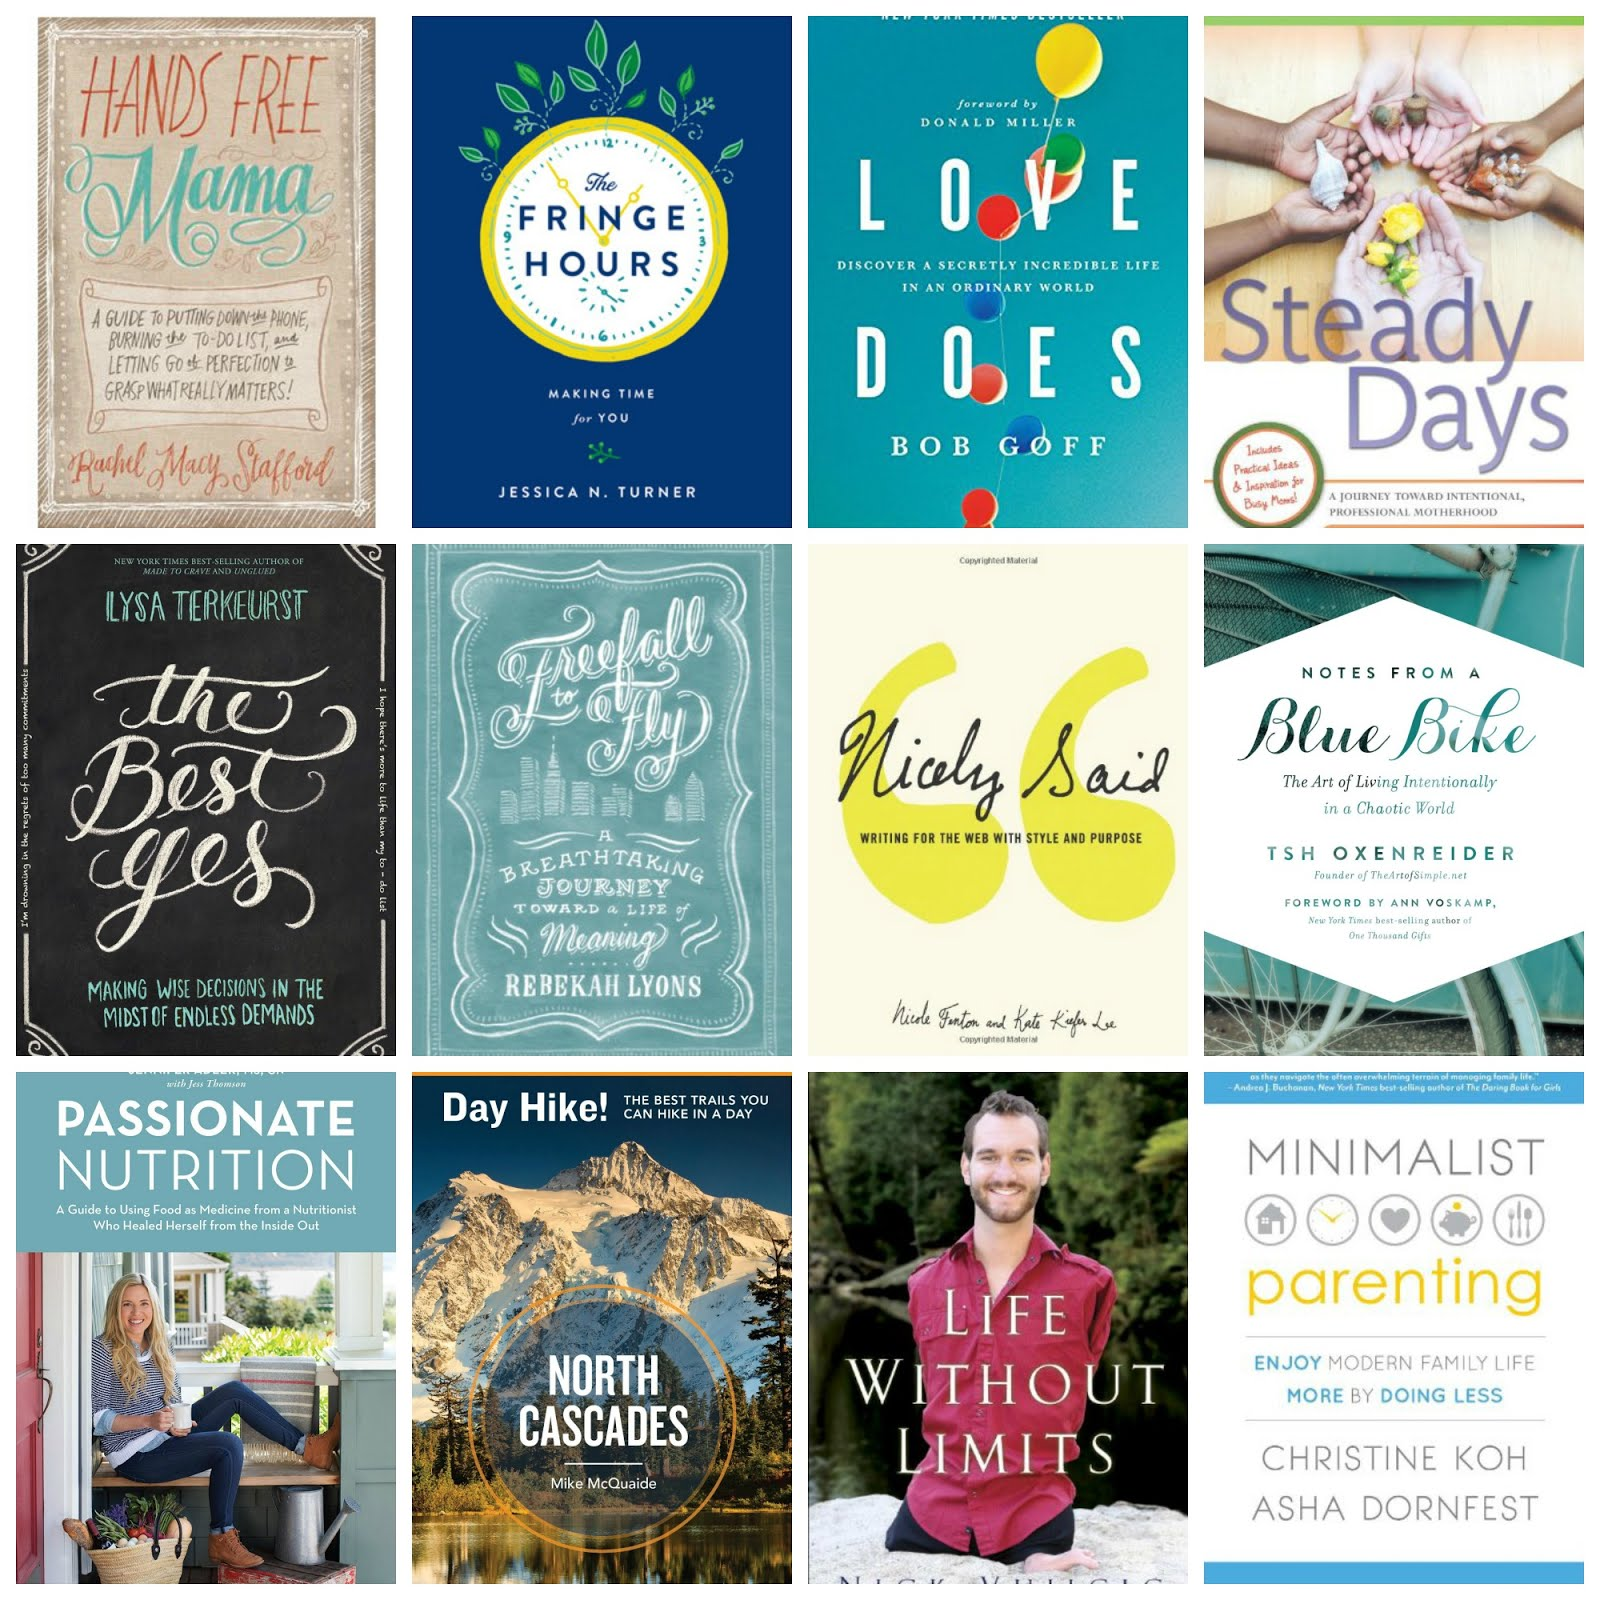 12 Books To Read in 2015